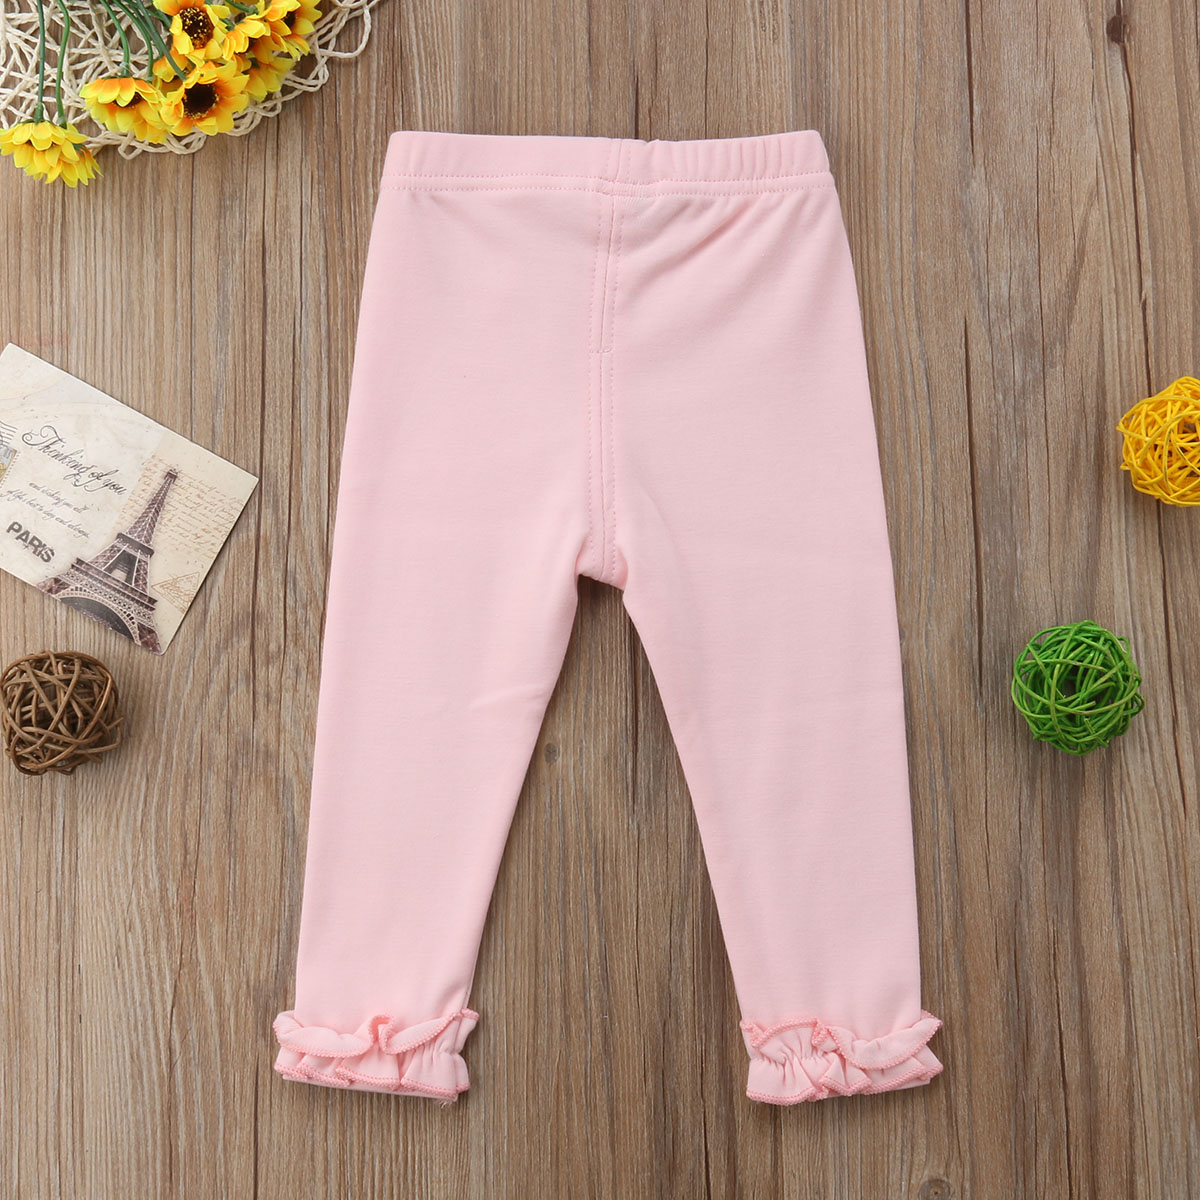 Kids Baby Girl Leggings Solid Trousers Toddler Casual School Long Pants Clothes